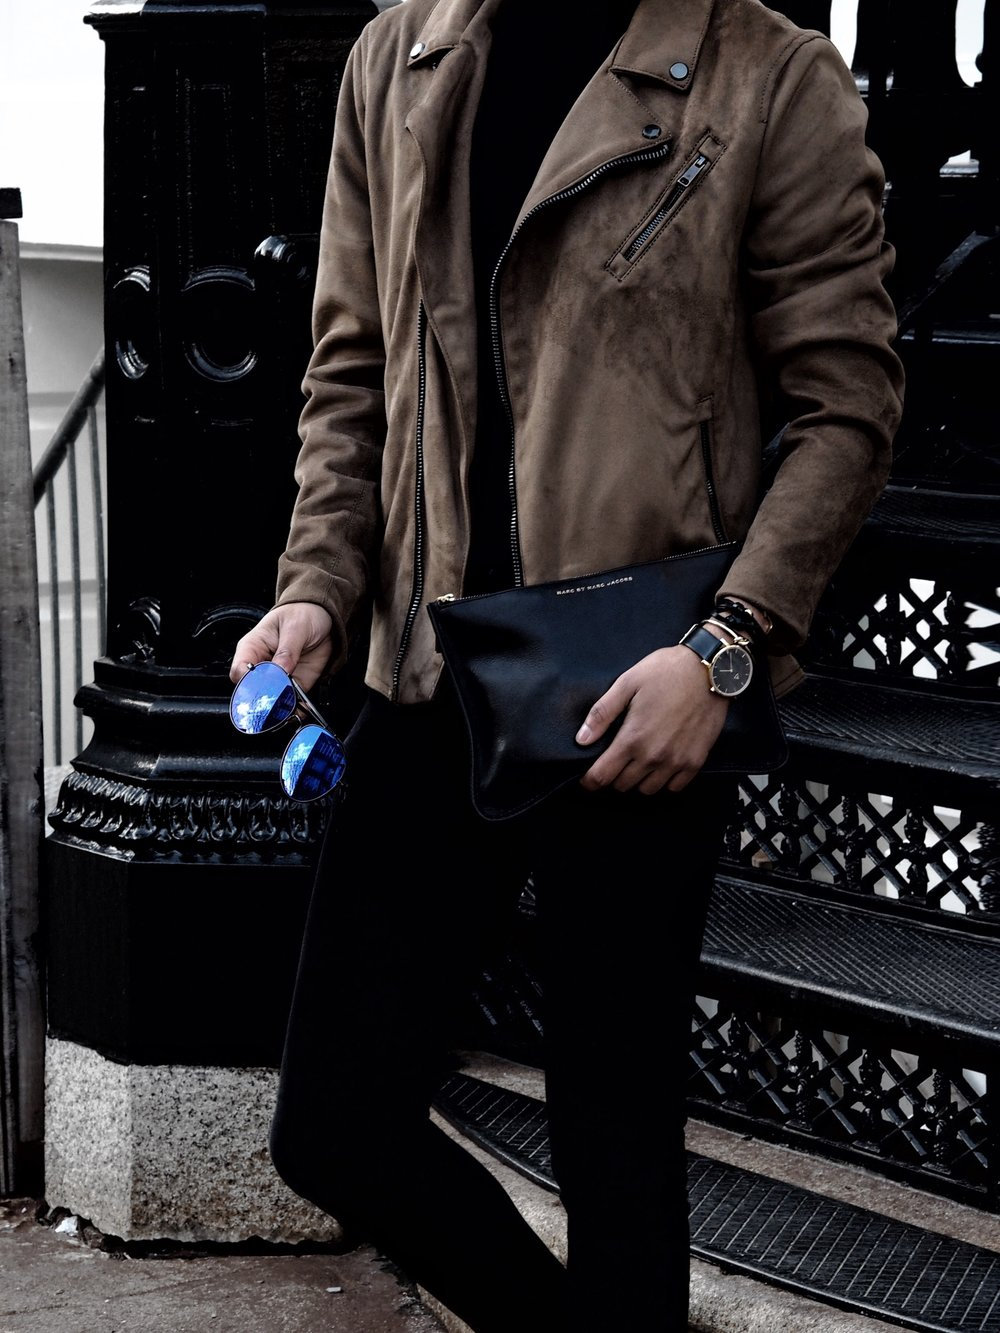 camel-suede-accessories-marcjacobs.JPG